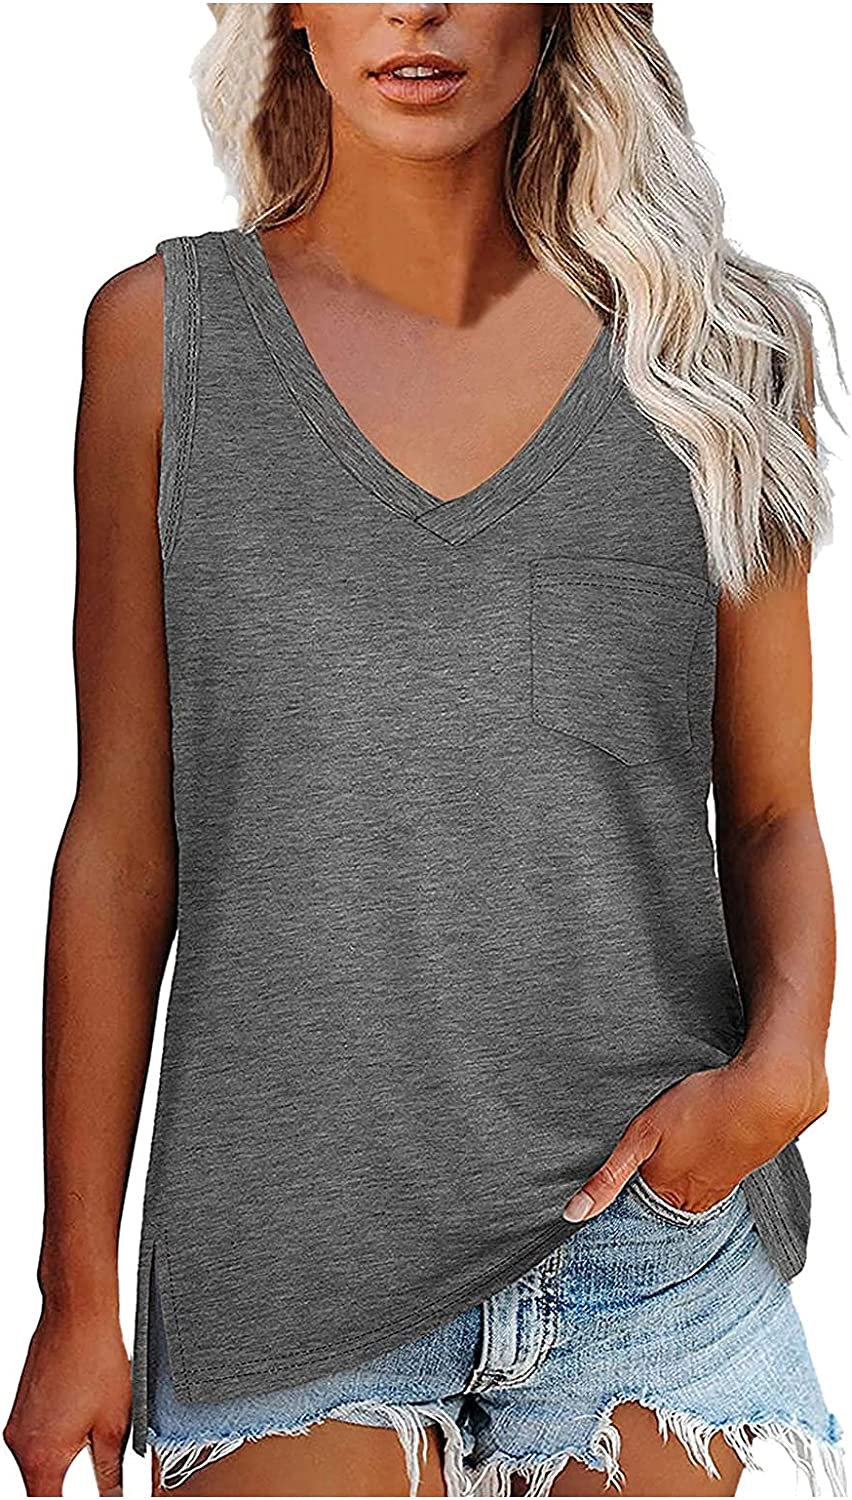 JPLZi Womens Tank Tops Loose Fit V Neck Summer Sleeveless Tops with Pocket